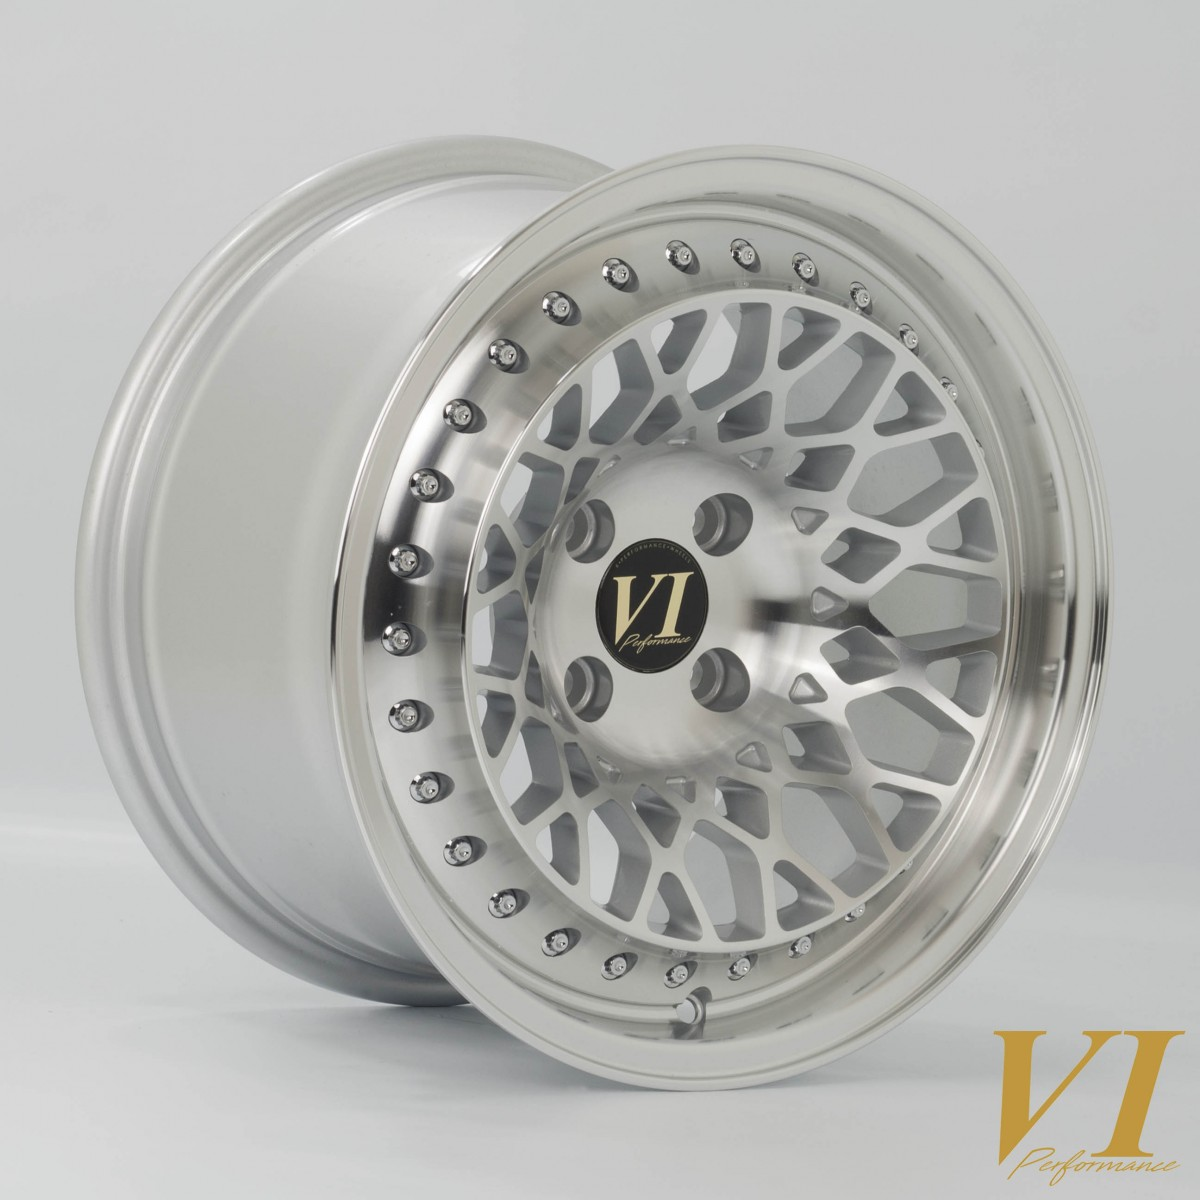 6Performance Infinity 15x8.25 4x100 ET15 Silver with Polished Lip